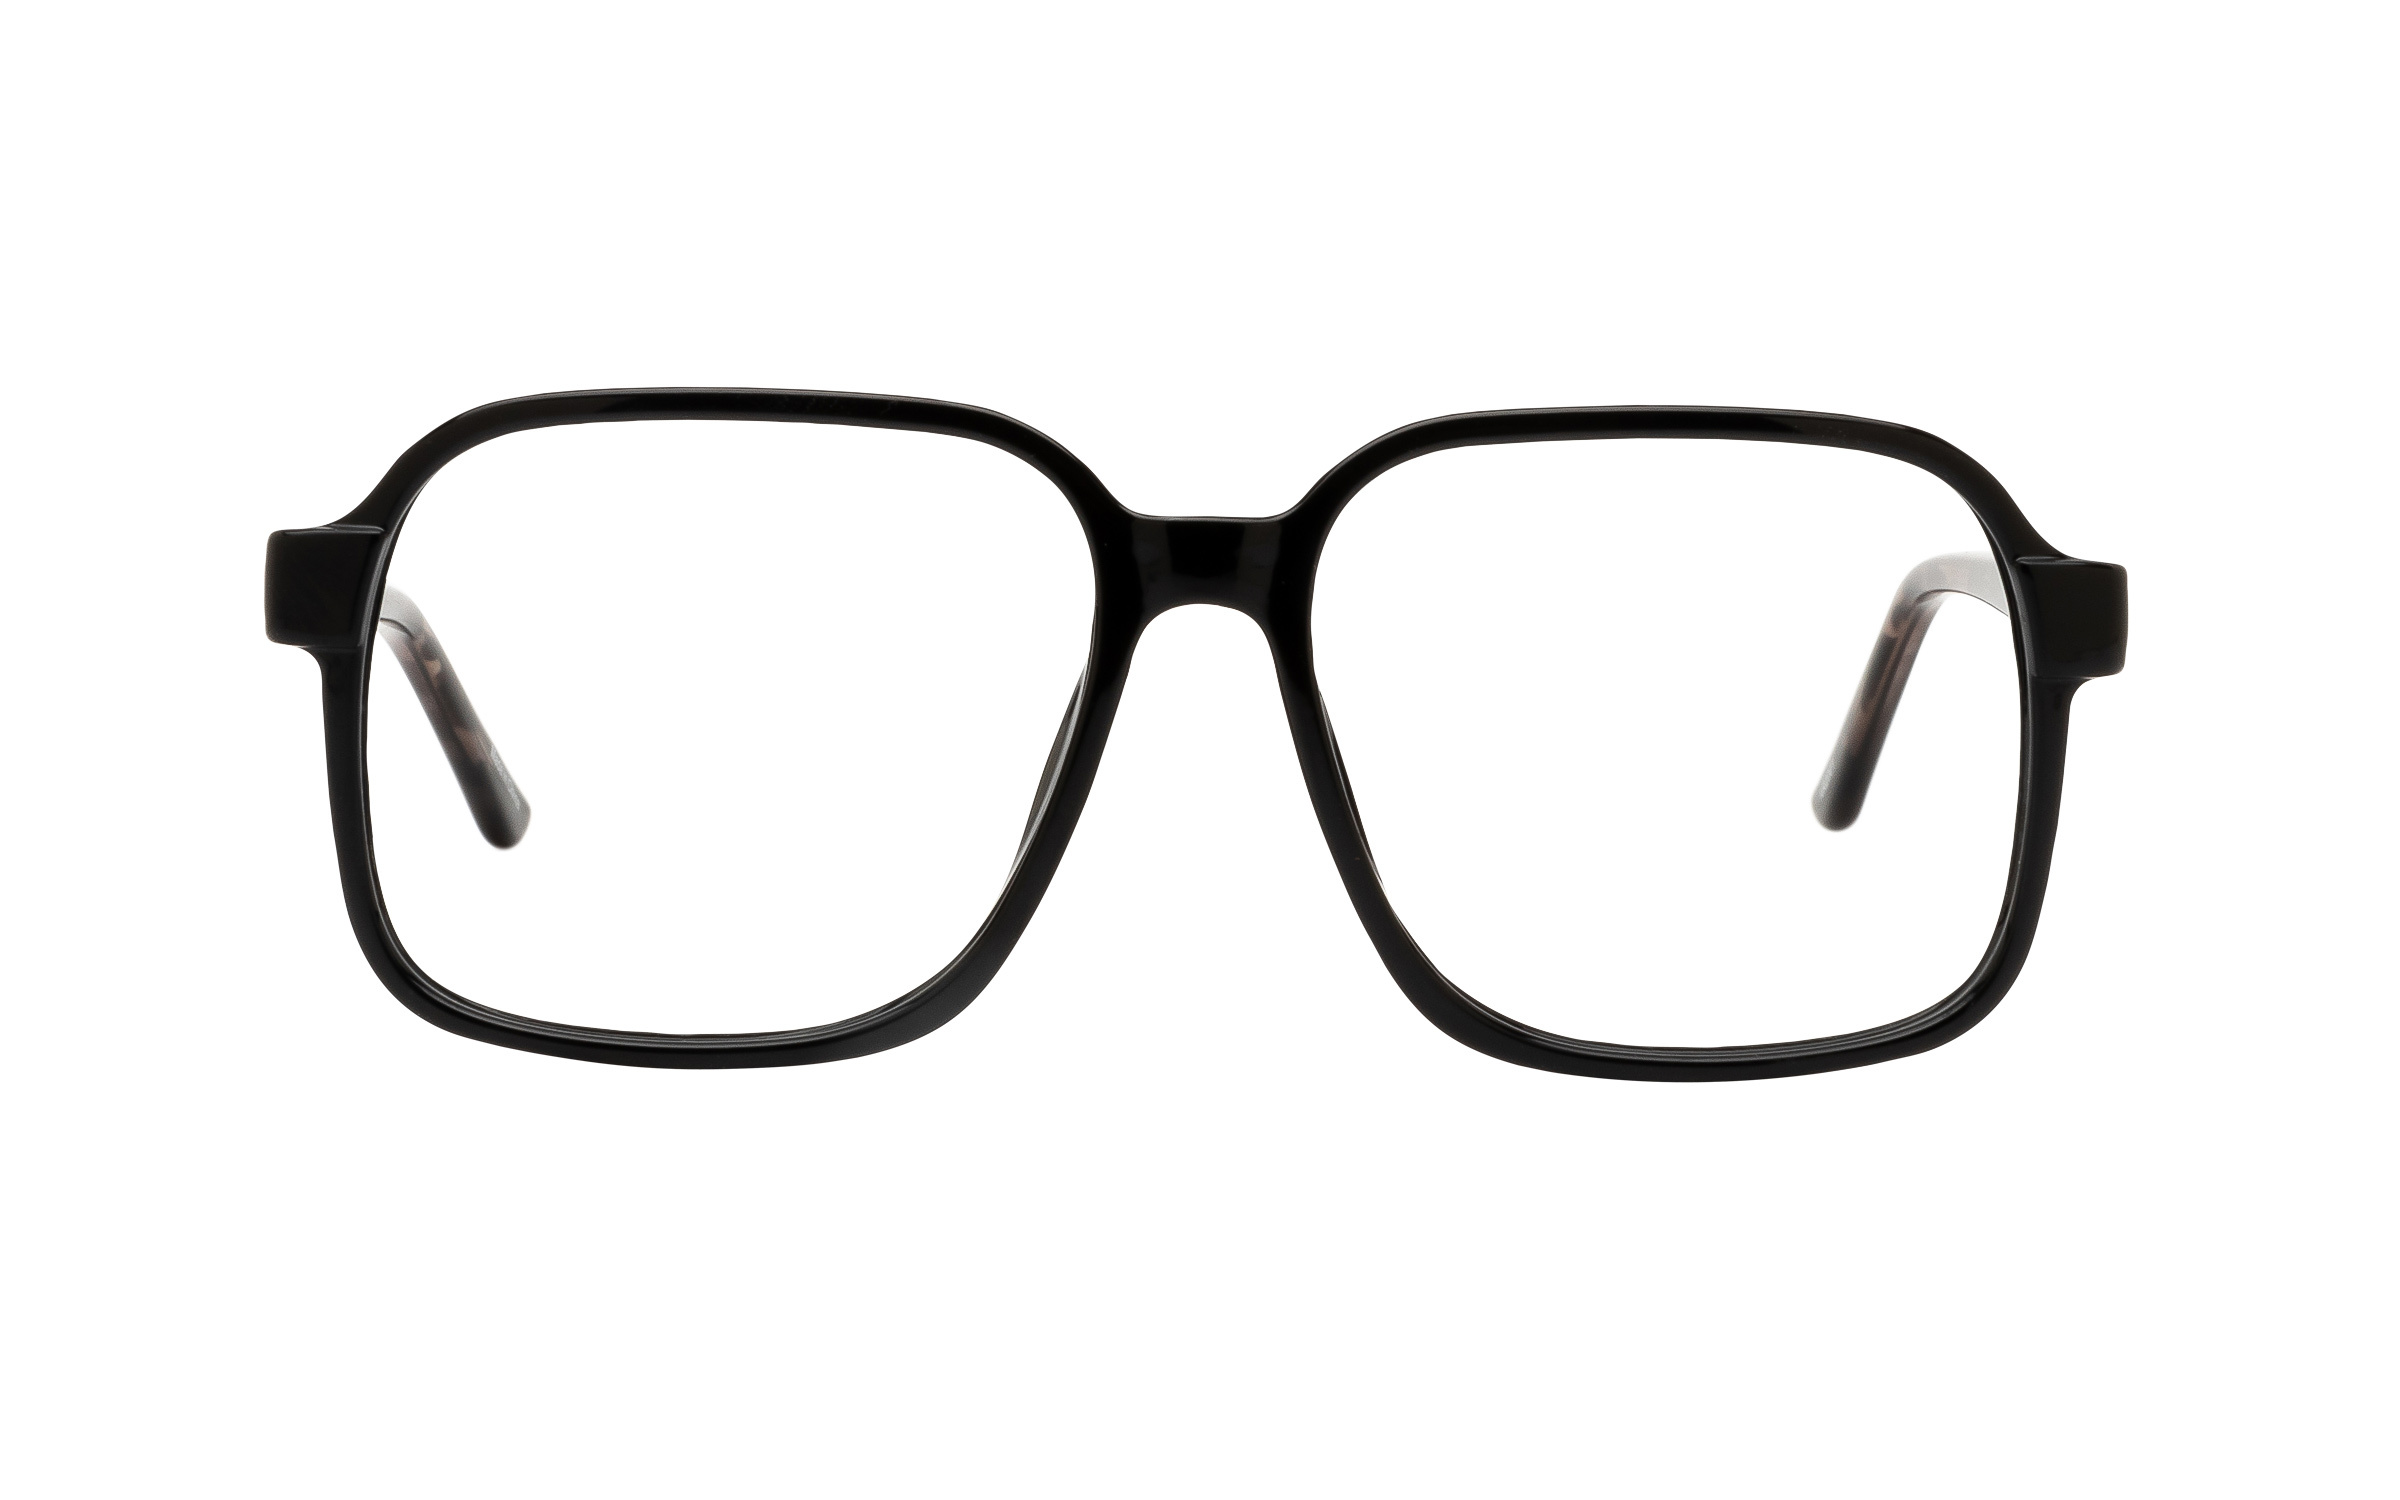 http://www.coastal.com/ - Clearly Basics Mahone Bay CLS052 C01 (54) Eyeglasses and Frame in Black – Online Coastal